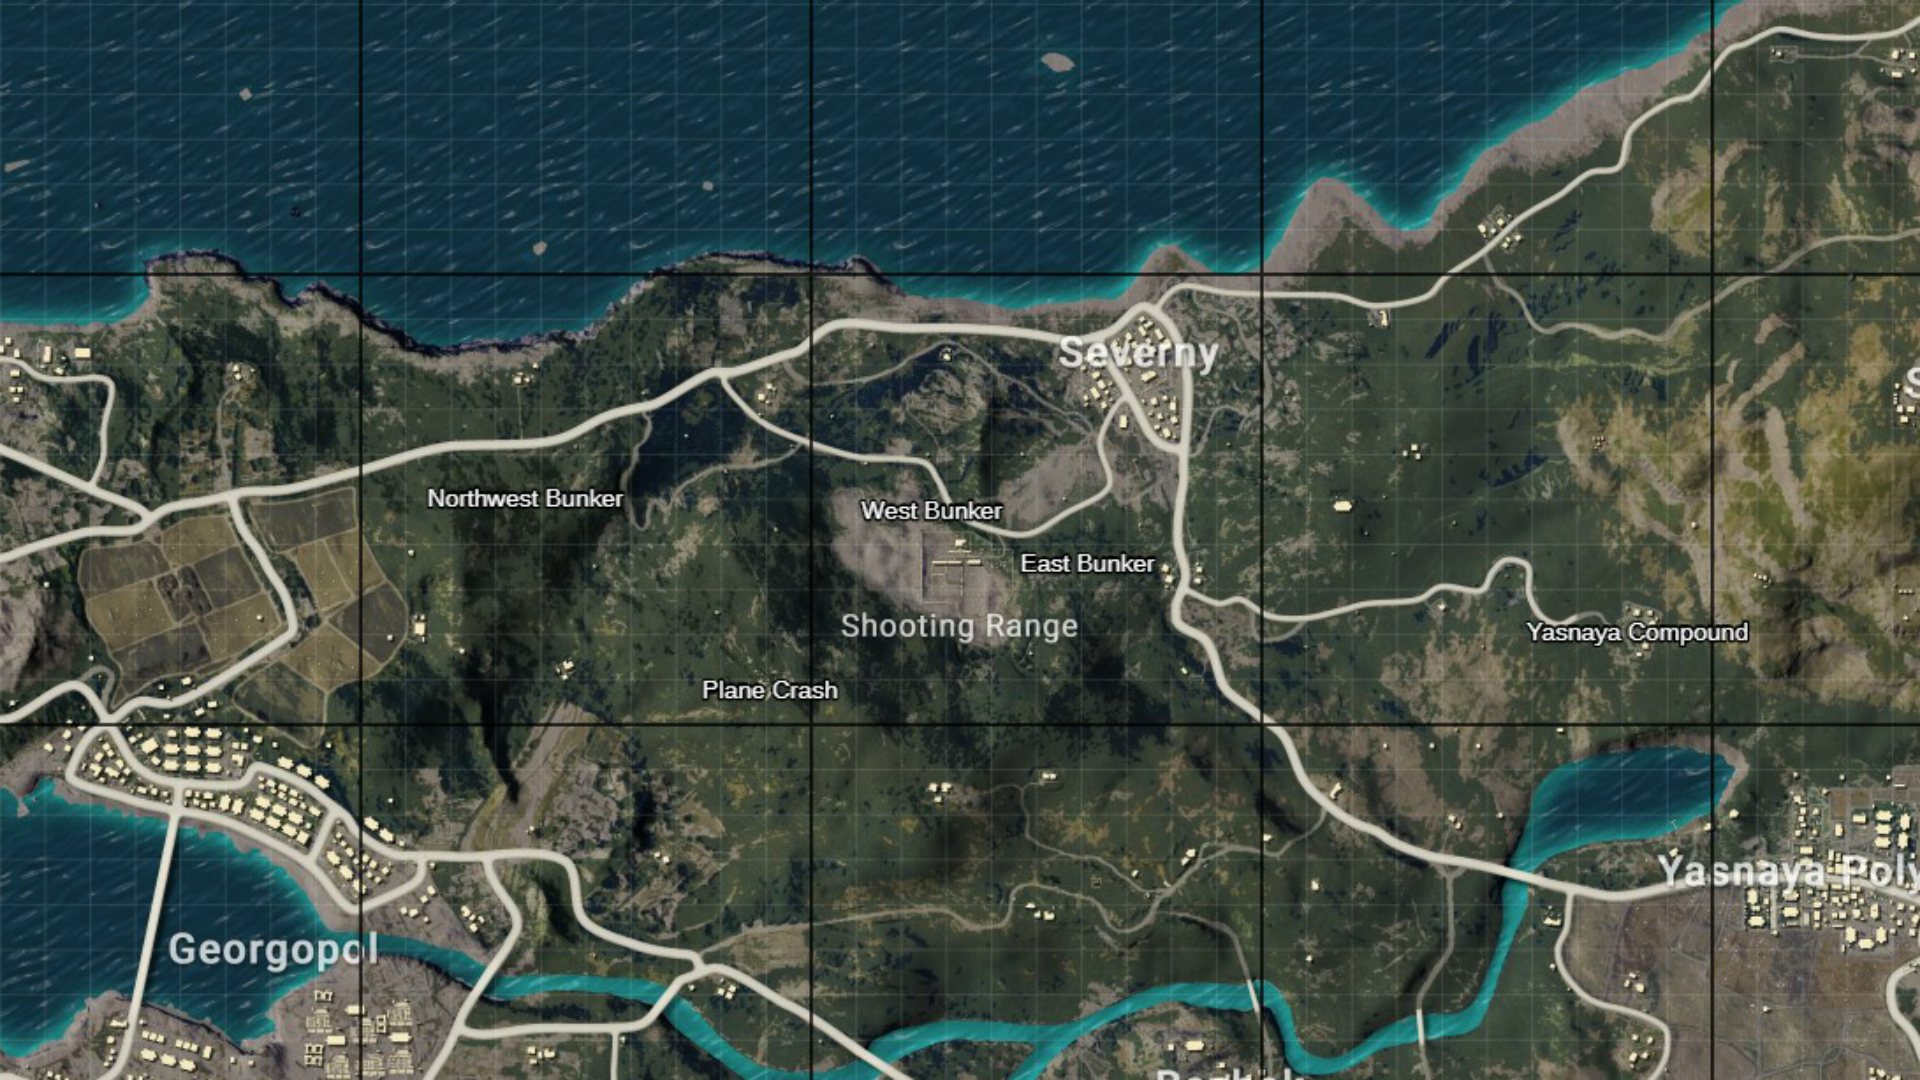 What You Can Learn From The Team Behind Pubg: PUBG Guide: Tips And Tricks For Battlegrounds Wins